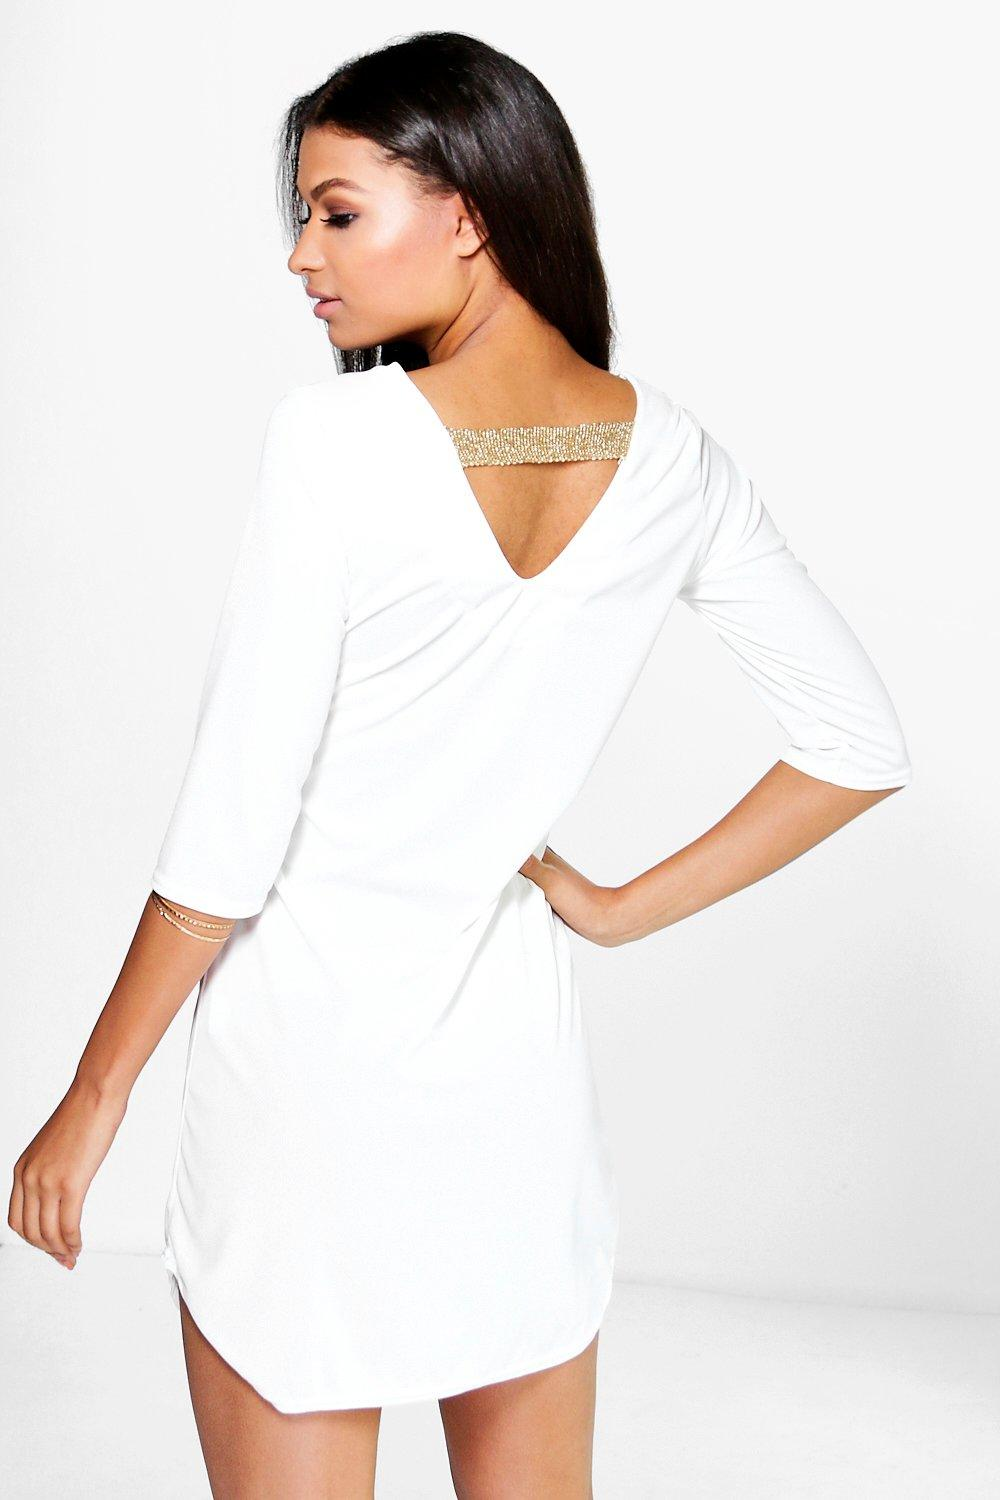 Sophina Metallic Strap Back Dress